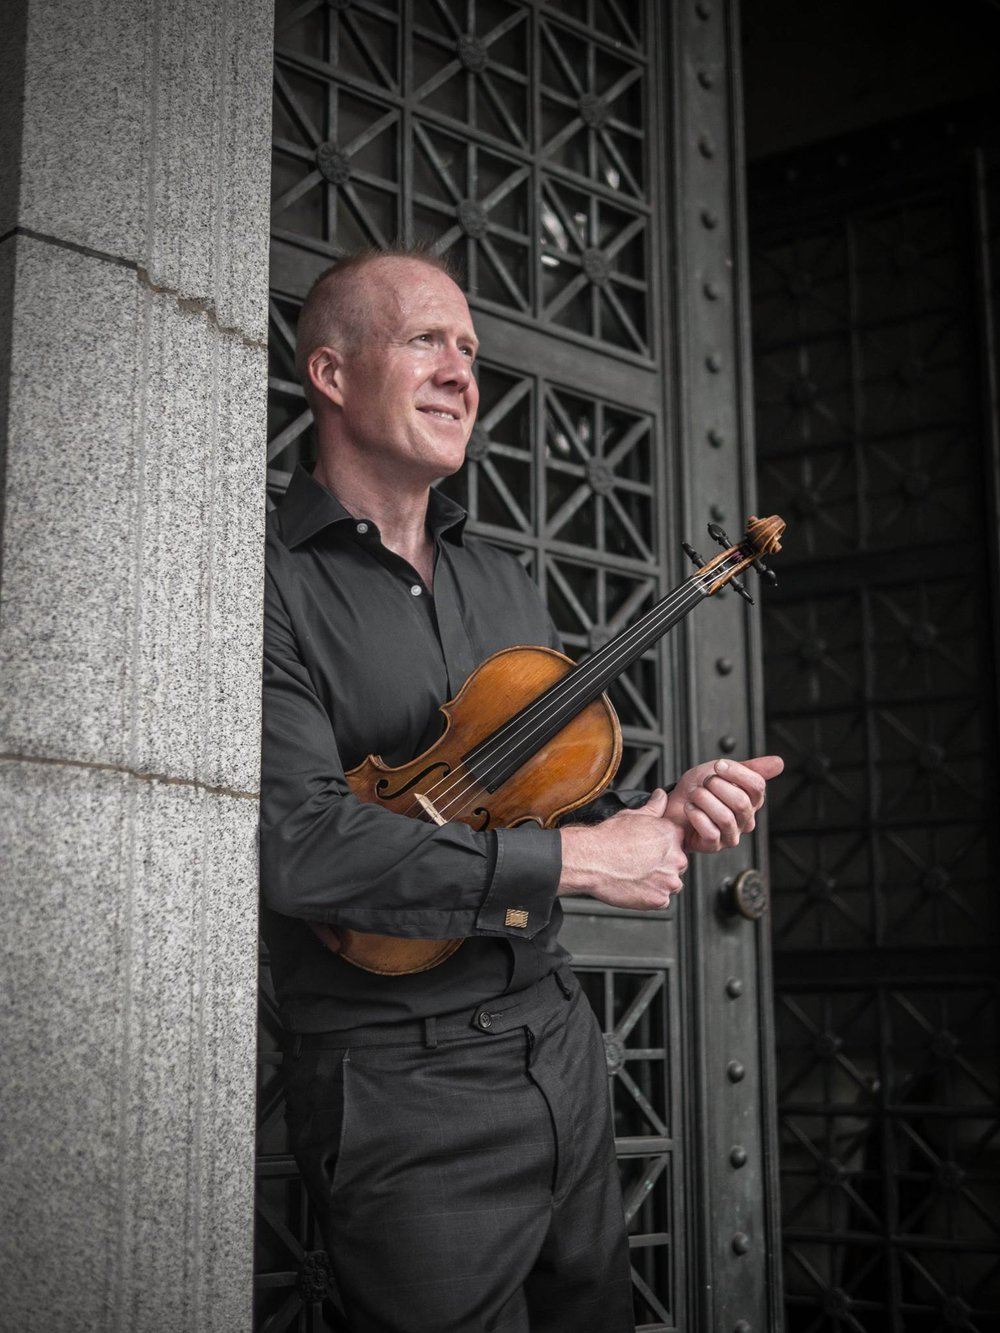 Ken Johnston, Erie Philharmonic Concertmaster